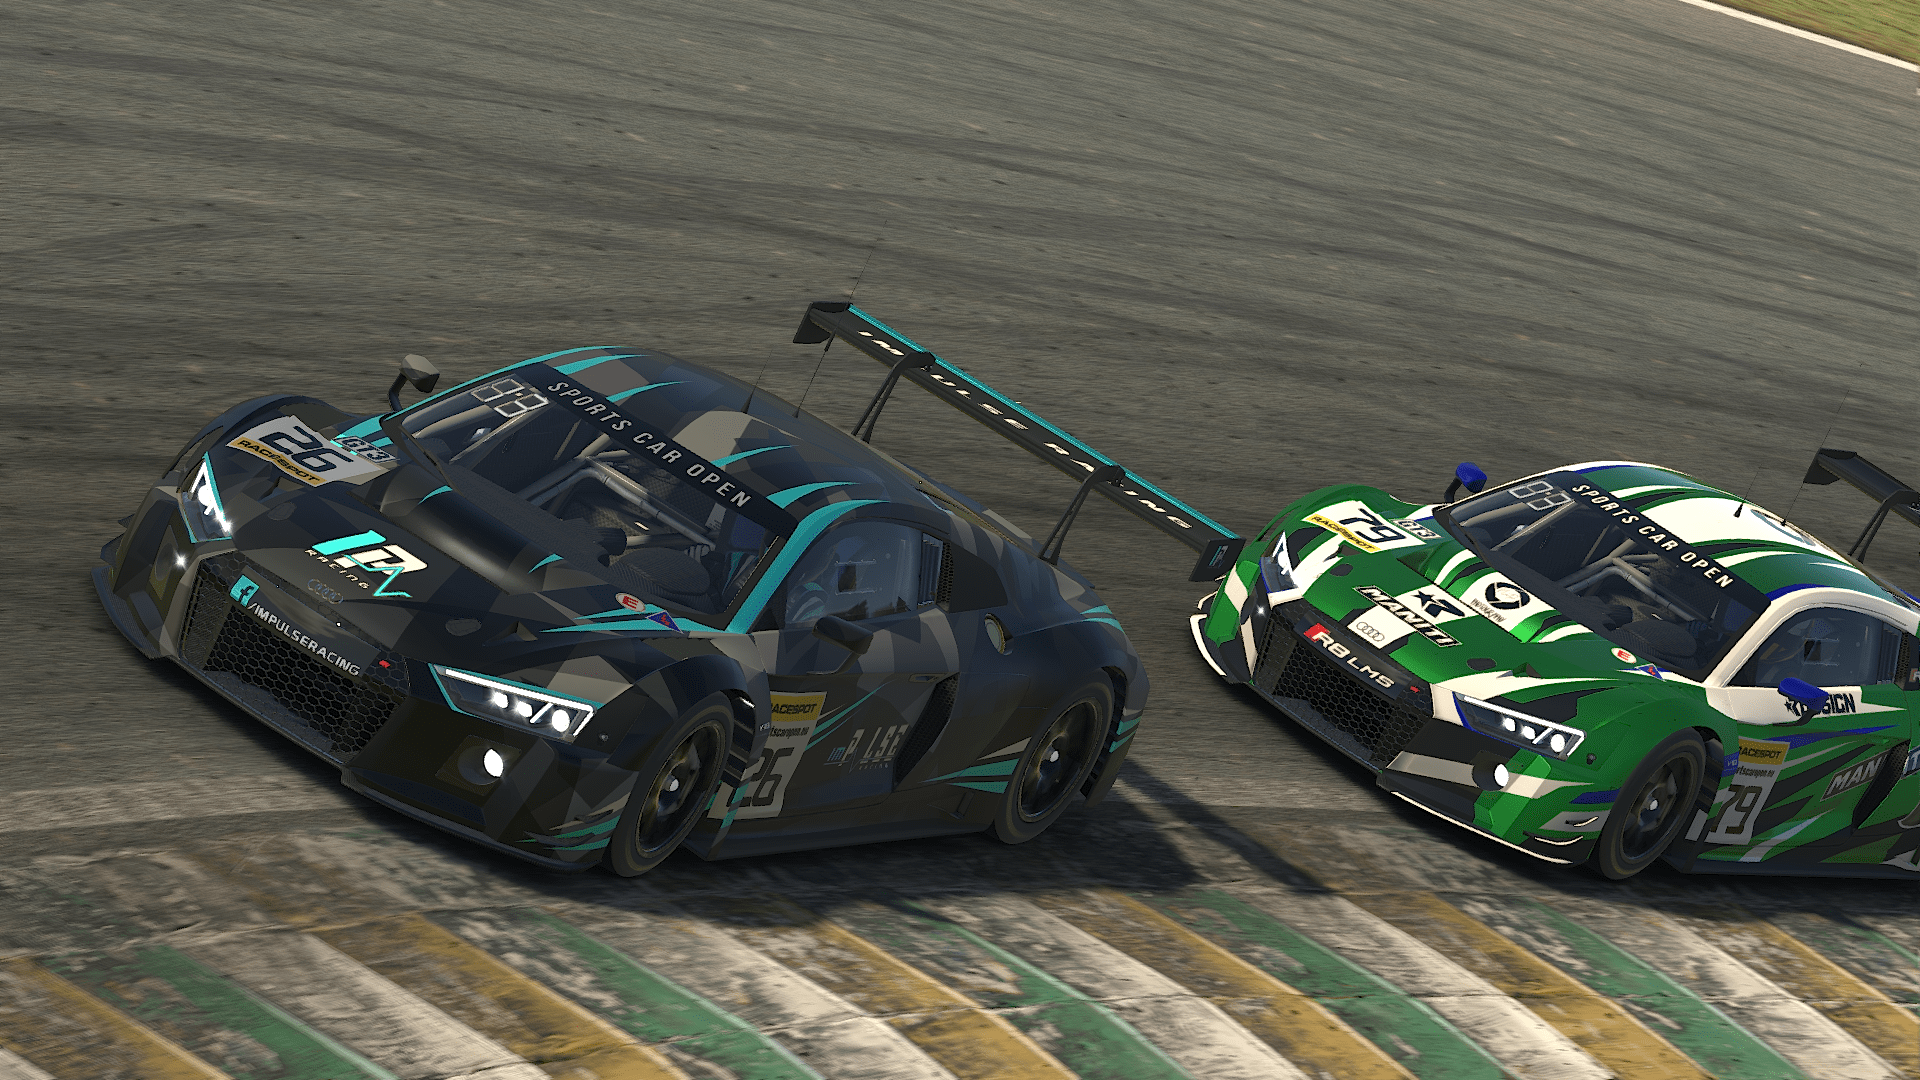 Audi R8 GT3 at Interlagos against Maniti Racing